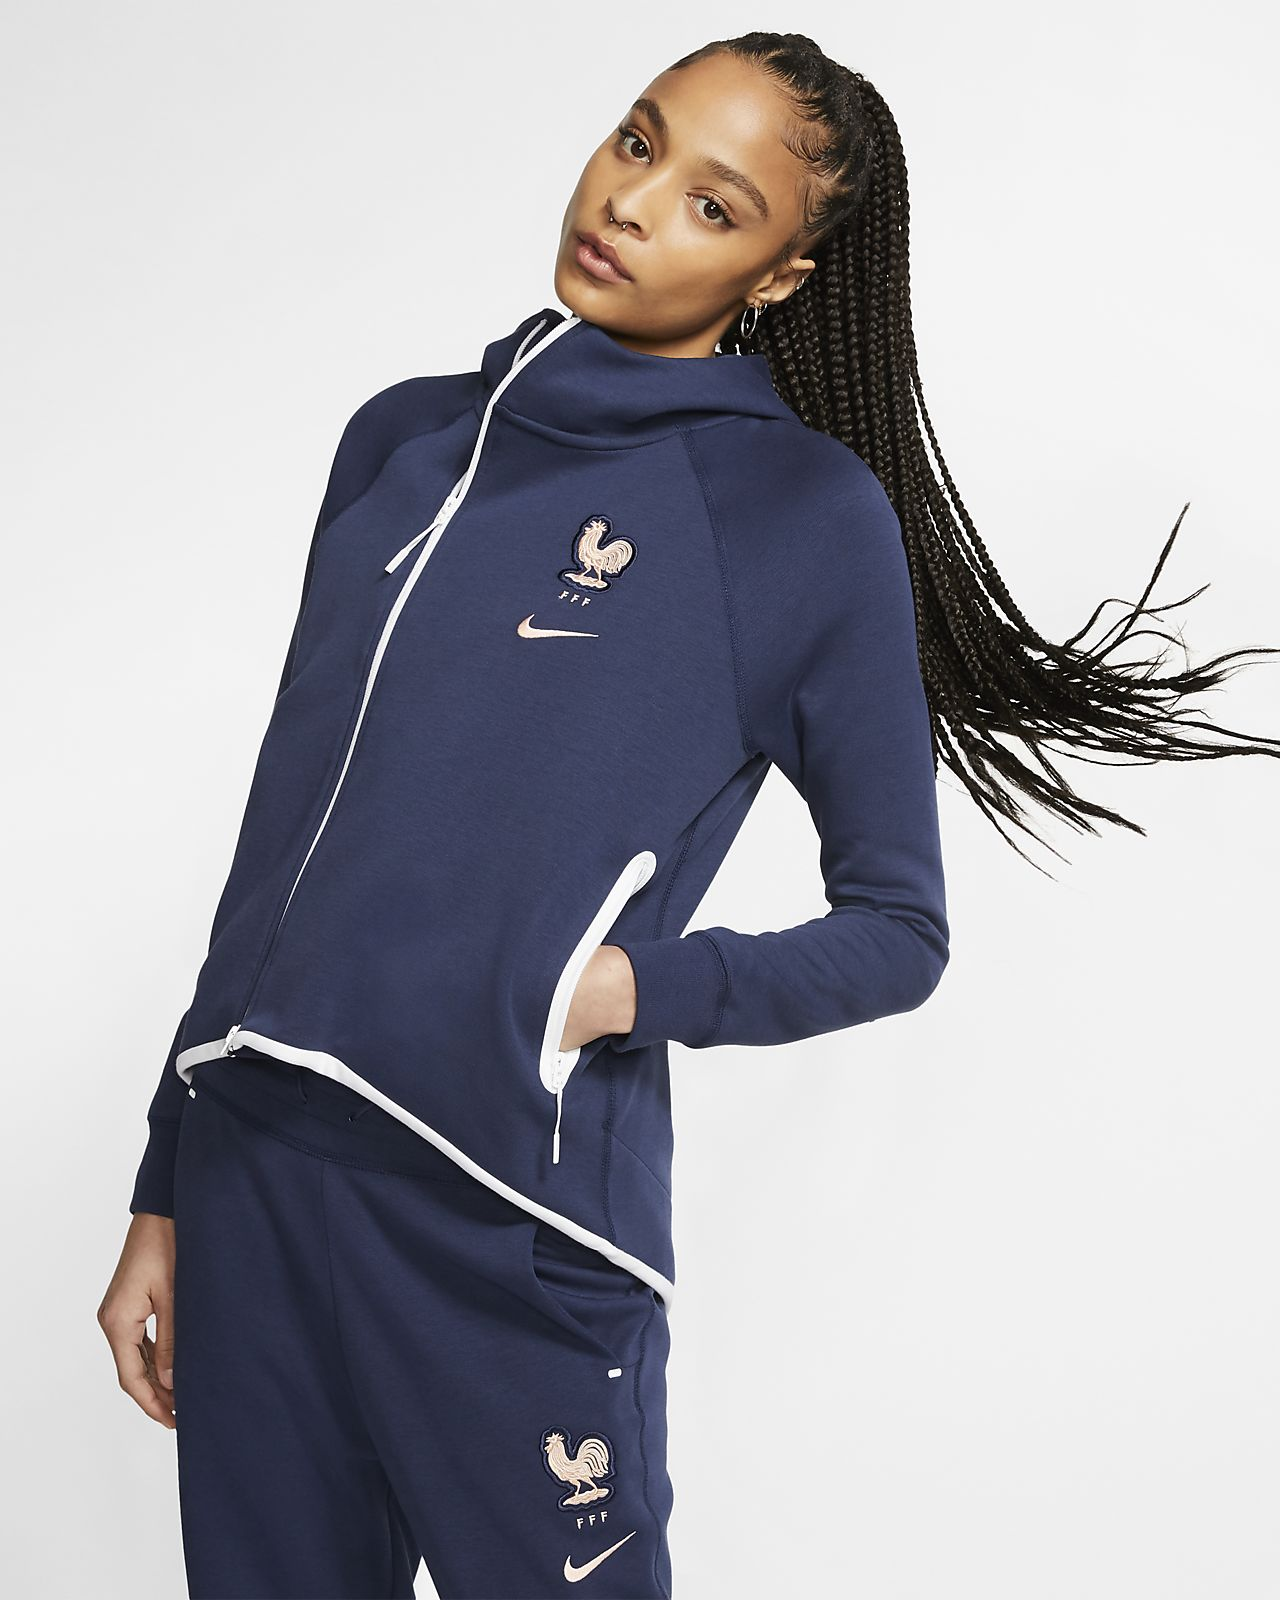 FFF Tech Fleece Women's Football Cape